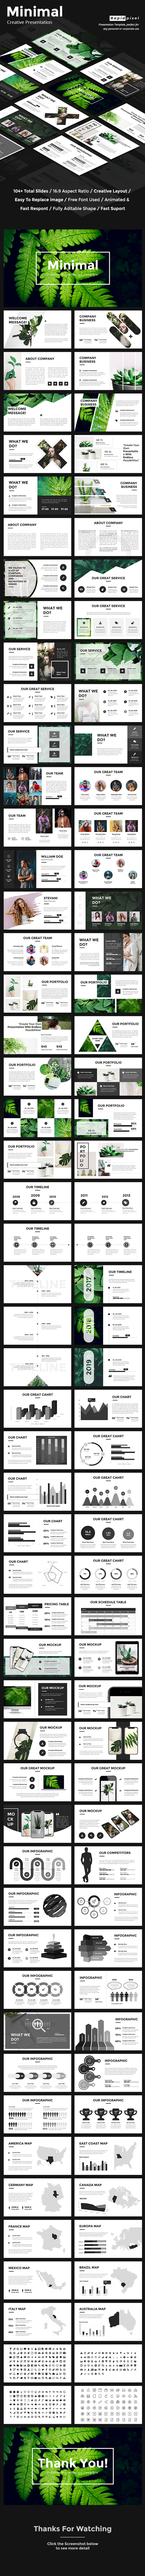 Minimal Creative Keynote Templates - Creative Keynote Templates